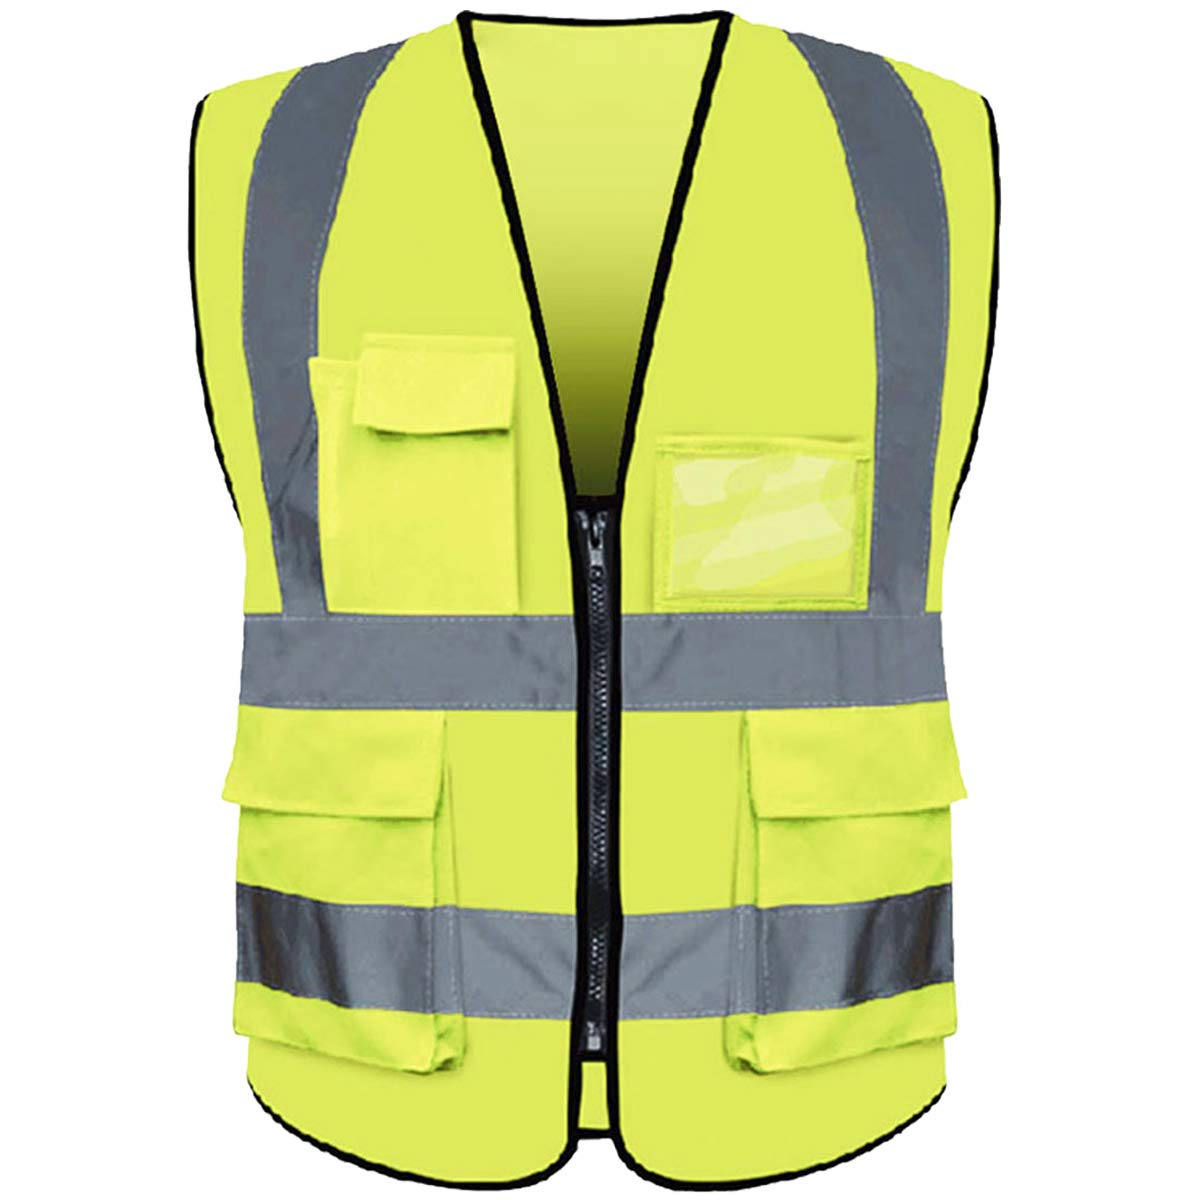 Reflective Safety Vest ANSI Class 2 High Visibility with 5 Pockets and Zipper XL 2XL Yellow